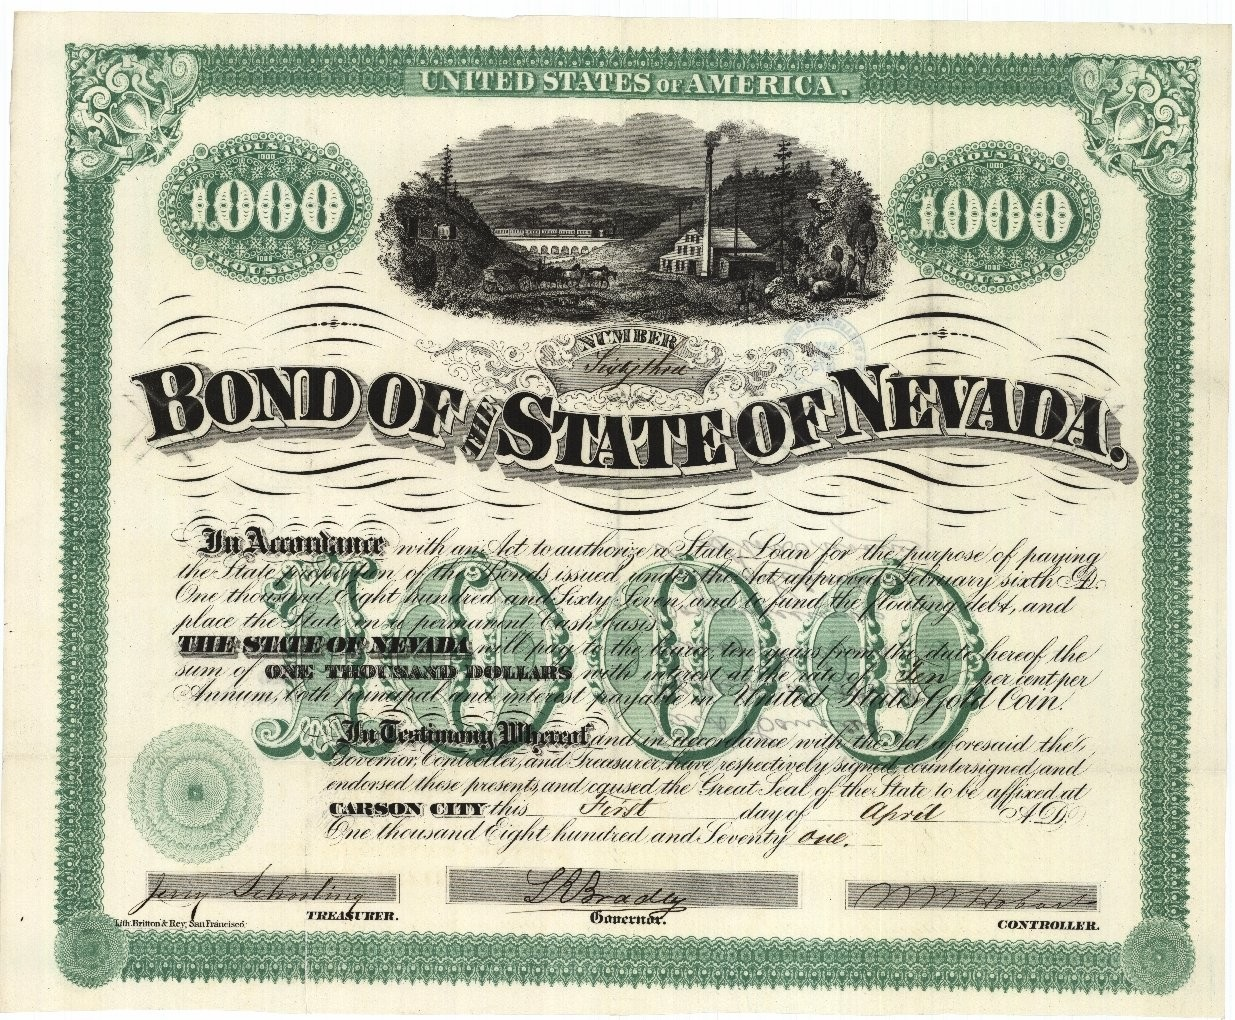 Bond of the State of Nevada 1000